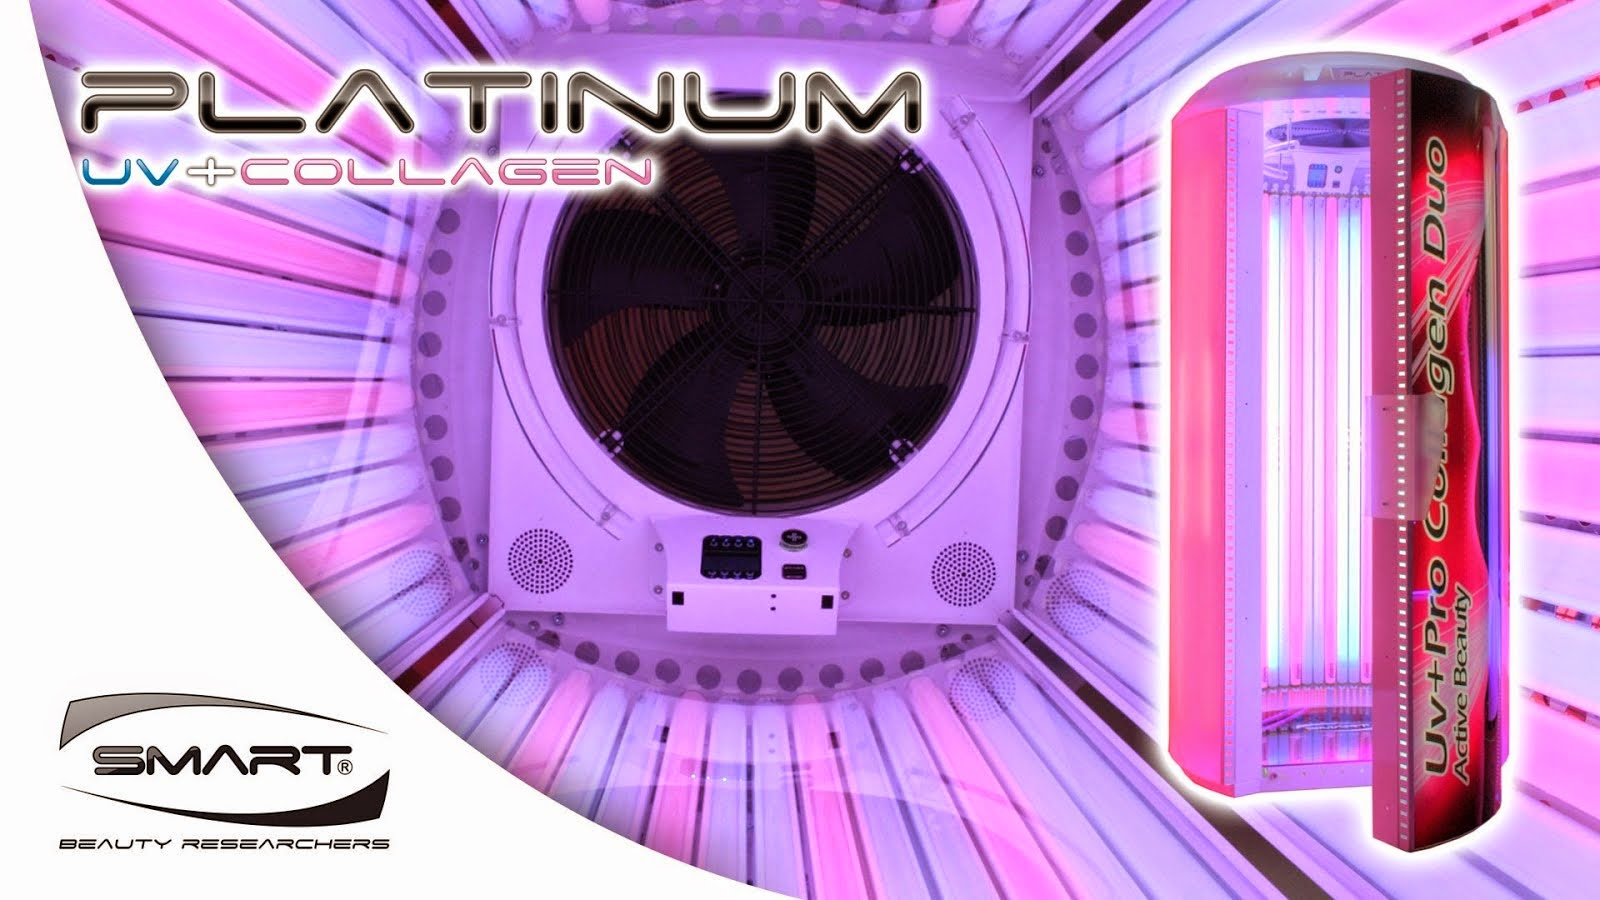 Platinum UV + Collagen